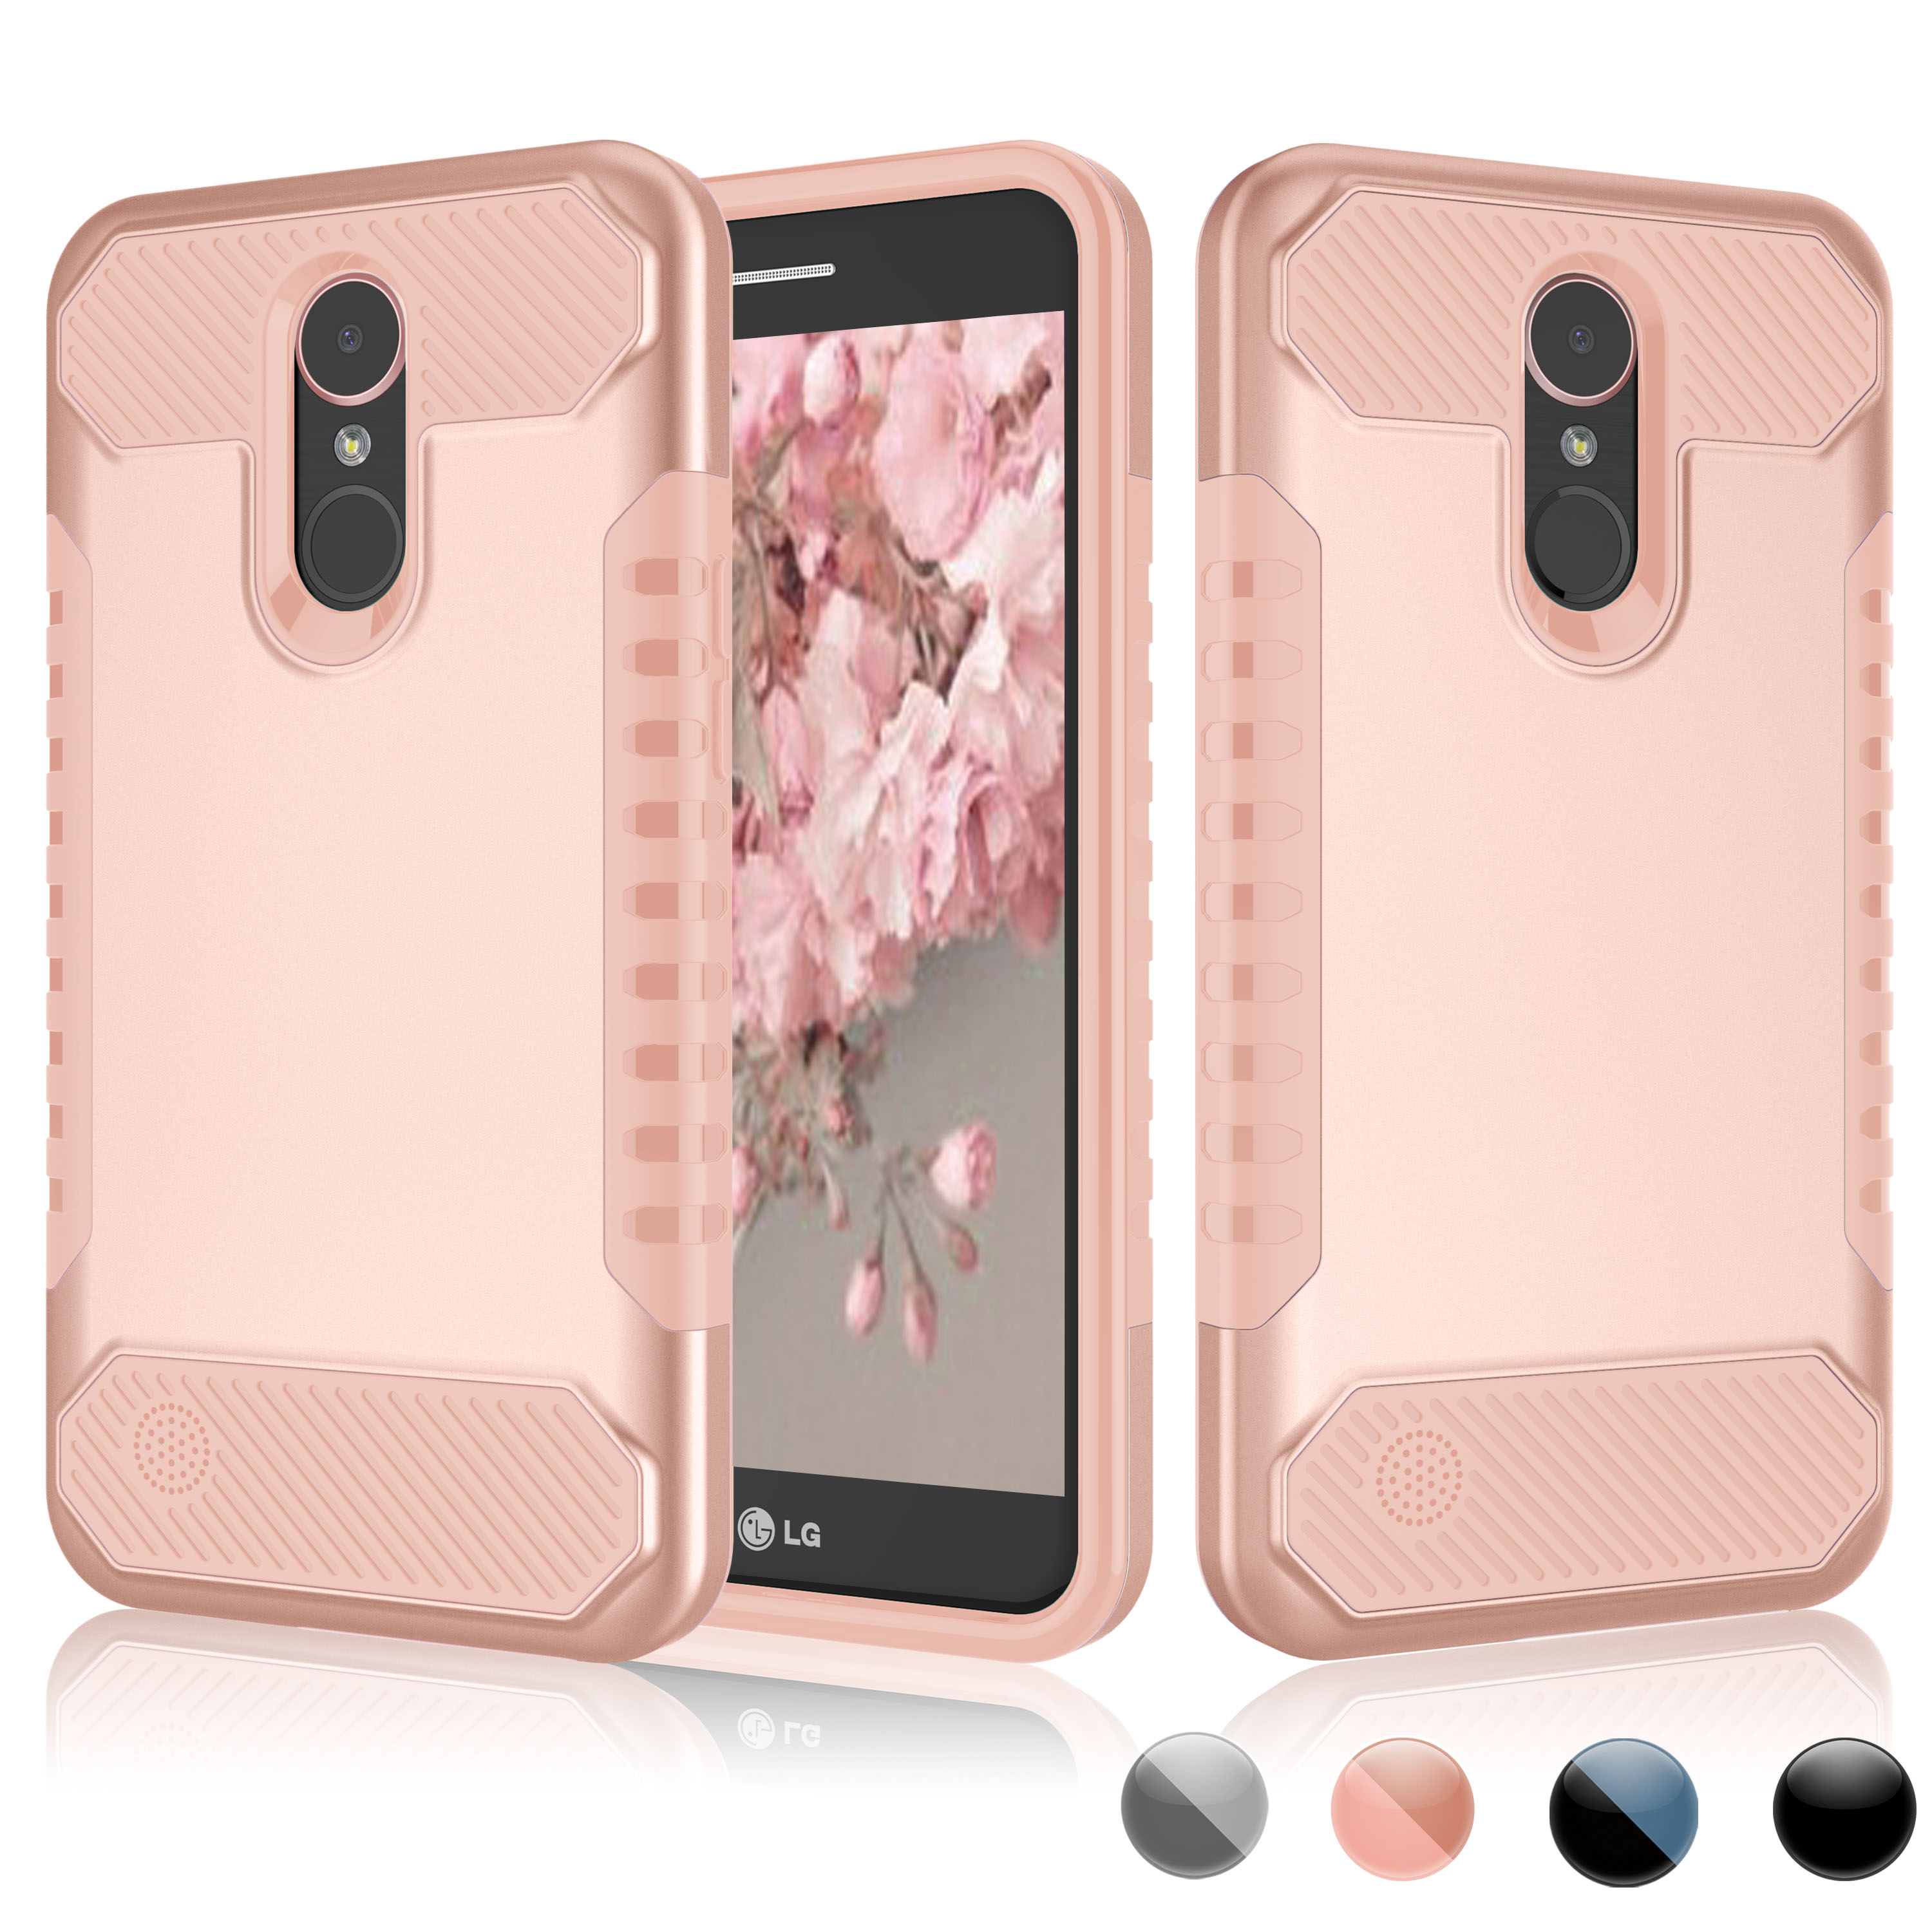 LG K10 2017 Case, LG K20 Plus Cute Case, LG K20 V Cover, LG V5 Case, Njjex Hybrid Shockproof Armor [Hard PC Back Cover + TPU Bumper] Case Cover For LG TP260 / LG MP260 -Rose Gold